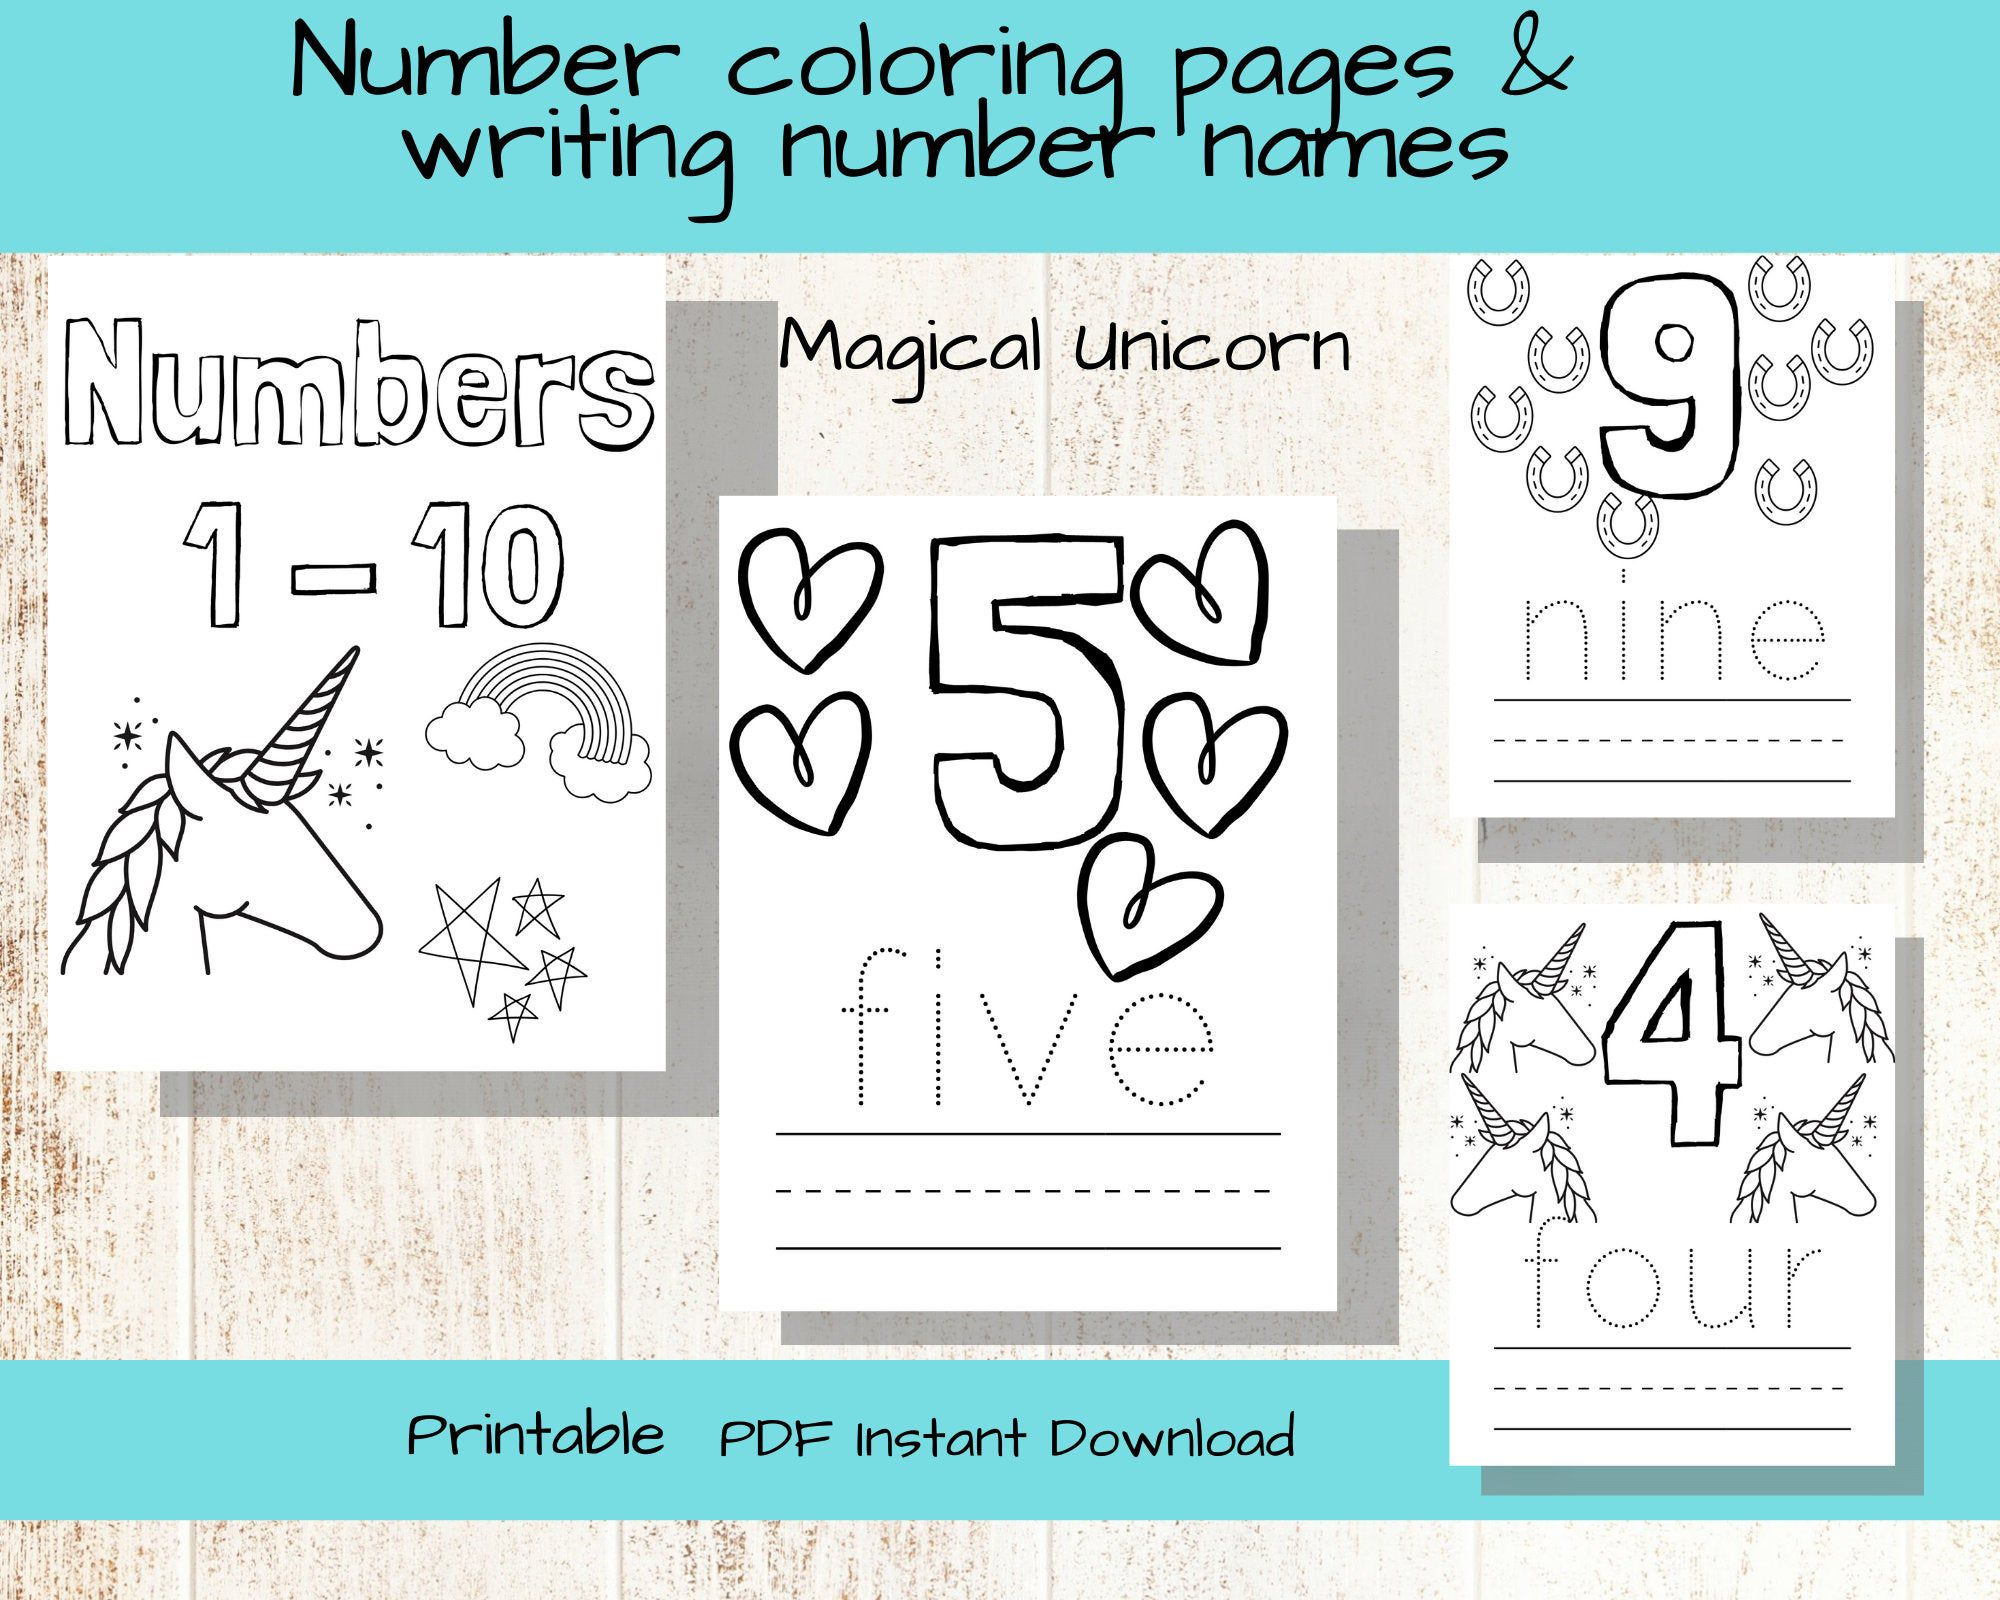 Number Coloring Pages Number Worksheet Magical Unicorn Etsy Number Worksheets Cool Coloring Pages Alphabet Coloring Pages